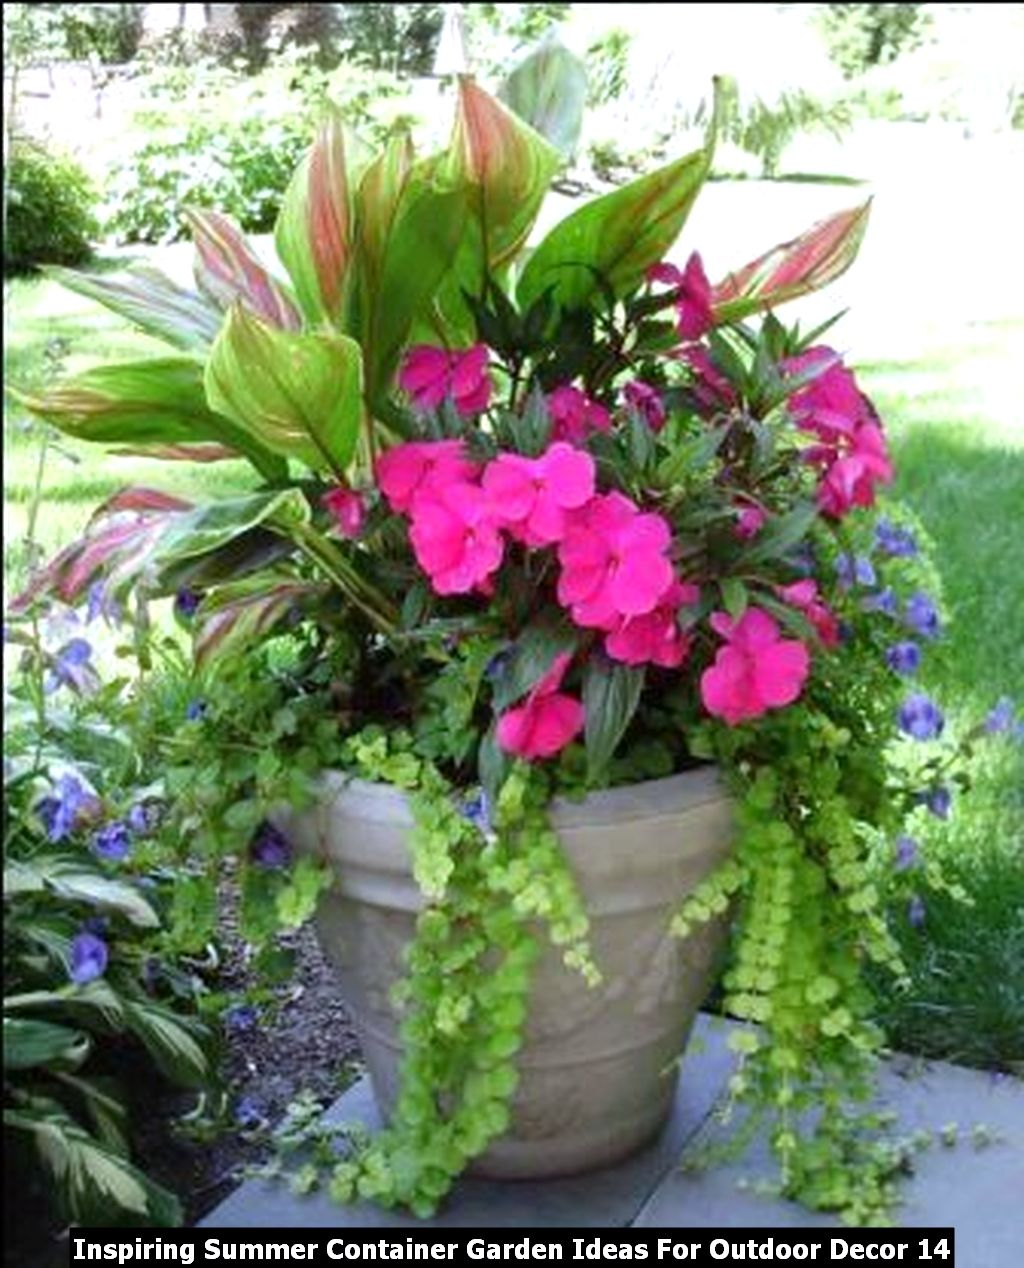 Inspiring Summer Container Garden Ideas For Outdoor Decor 14